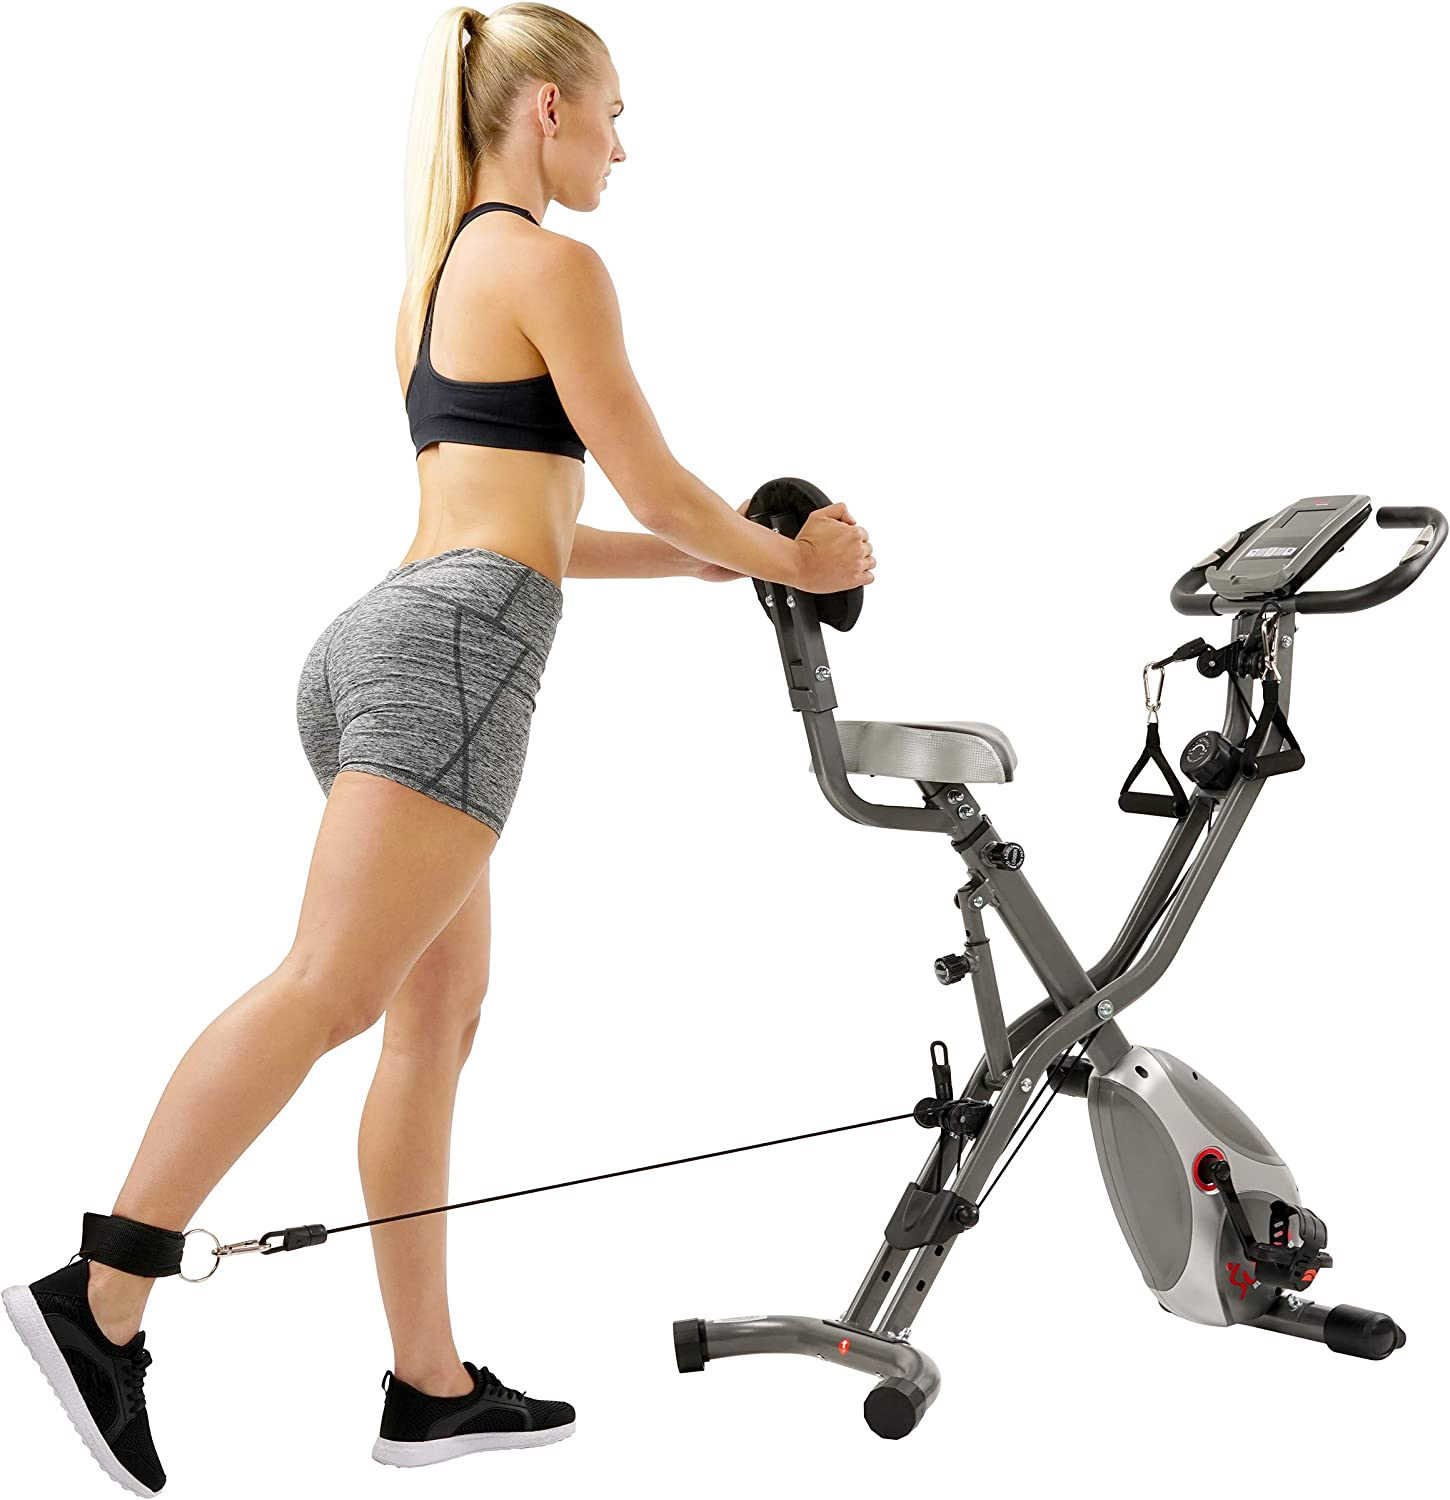 Sunny Health /& Fitness Foldable Semi Recumbent Magnetic Upright Exercise Bike w//Pulse Rate Monitoring SF-B2710 Adjustable Arm Resistance Bands and LCD Monitor